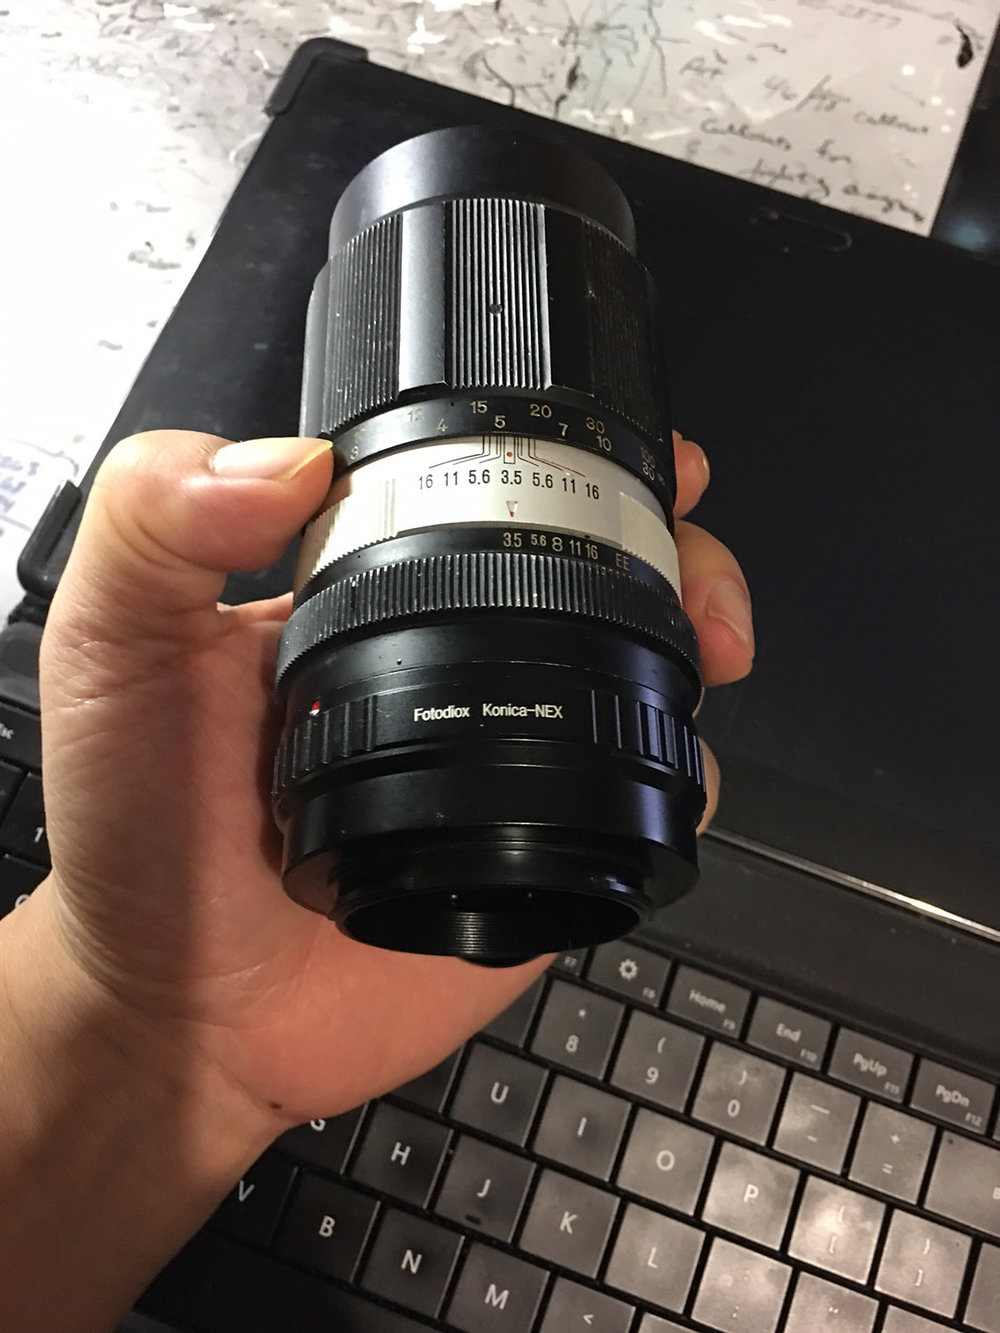 I ordered a Fotodiox Konica --> Sony NEX dummy adapter (again--fully manual focus/aperture lens, so no electronic information is passed) so that I can mount the lens onto my Sony A7Rii.